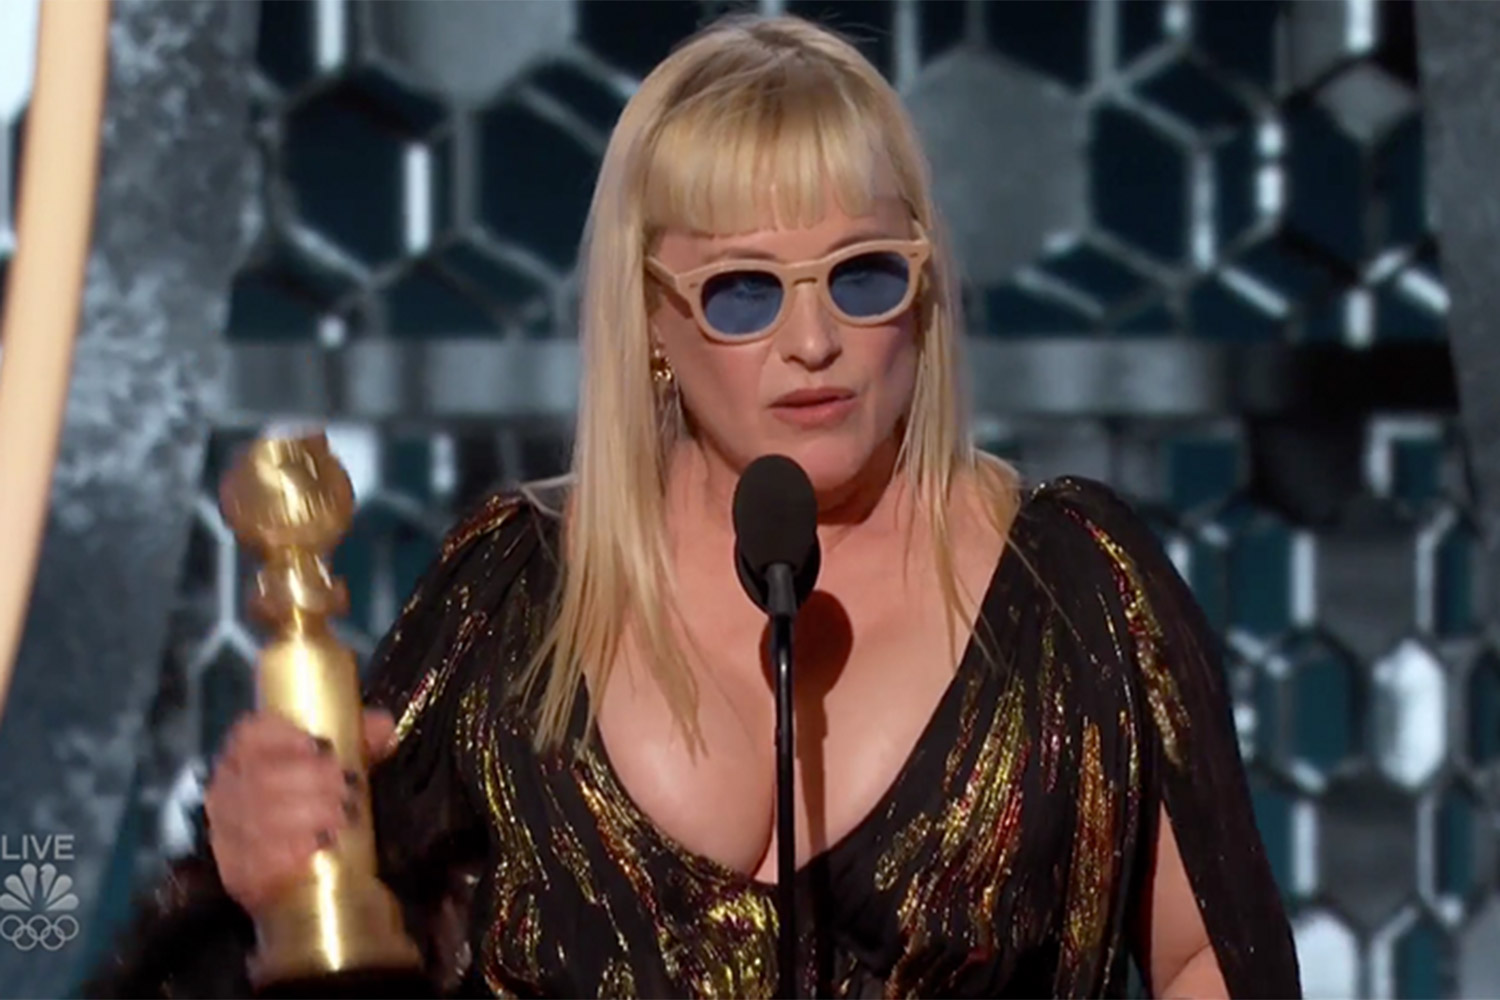 Patricia Arquette Begged 'of Us All' to Give Kids a 'Better World'